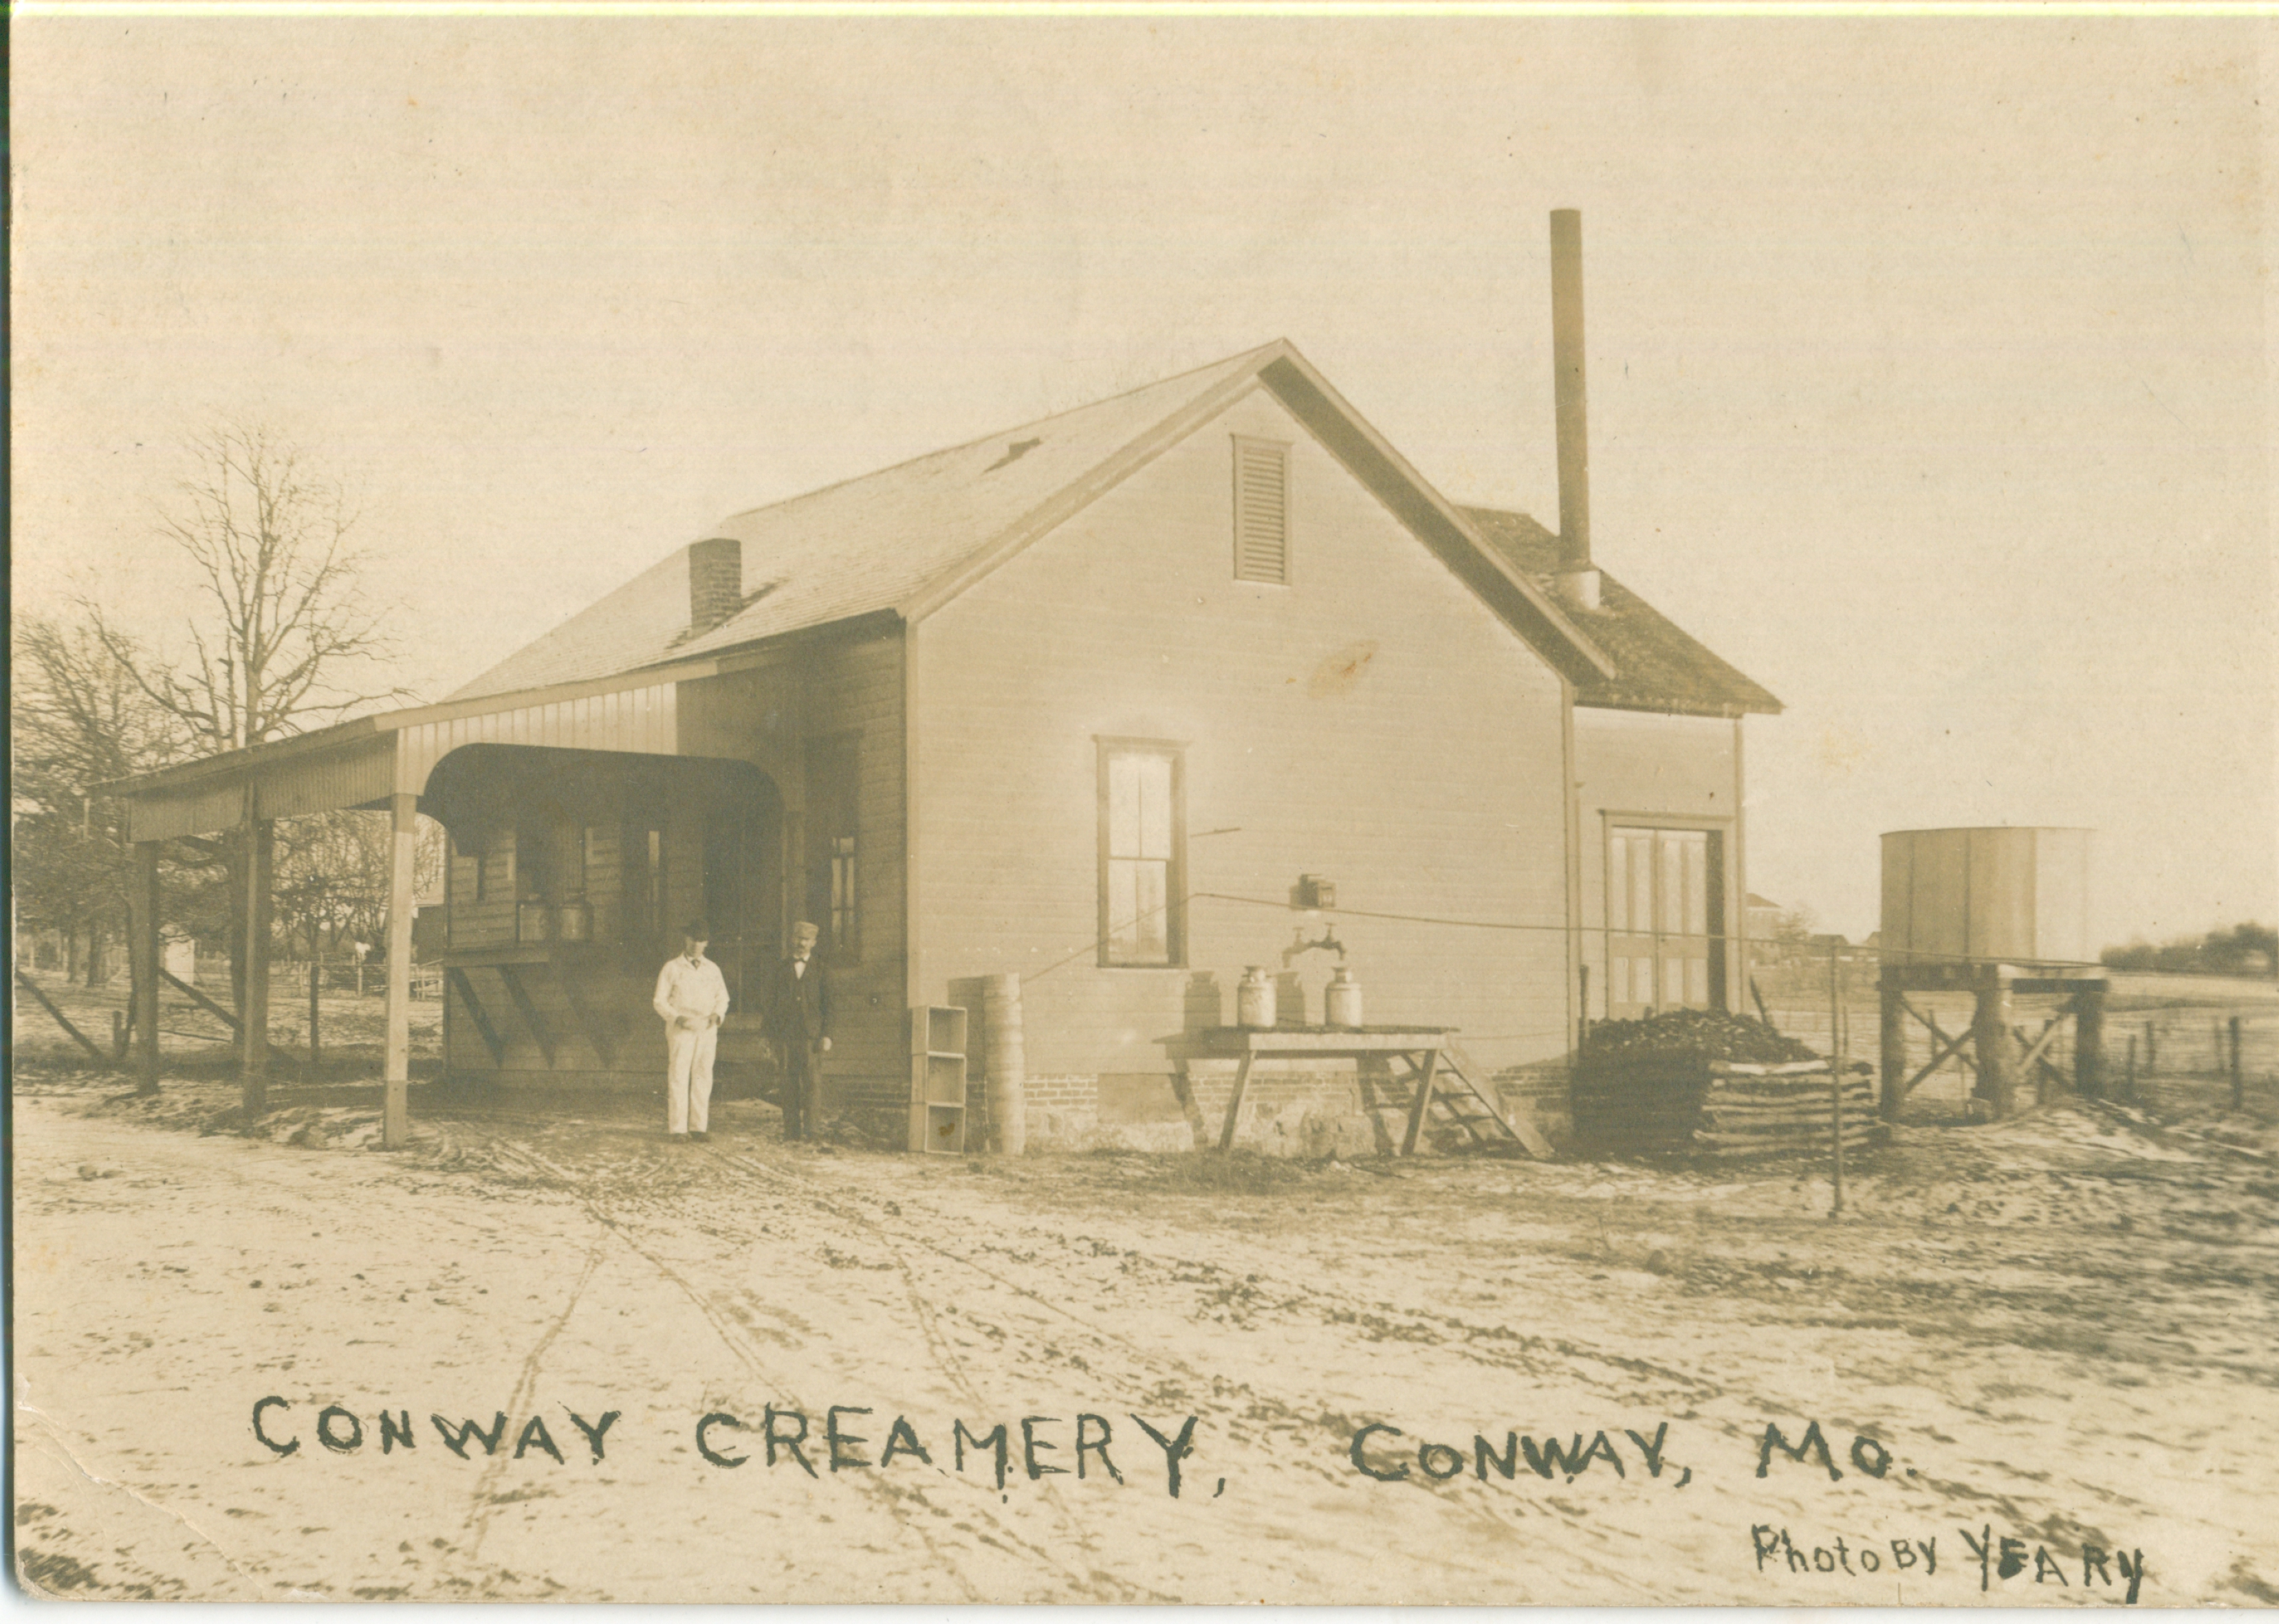 Conway Creamery